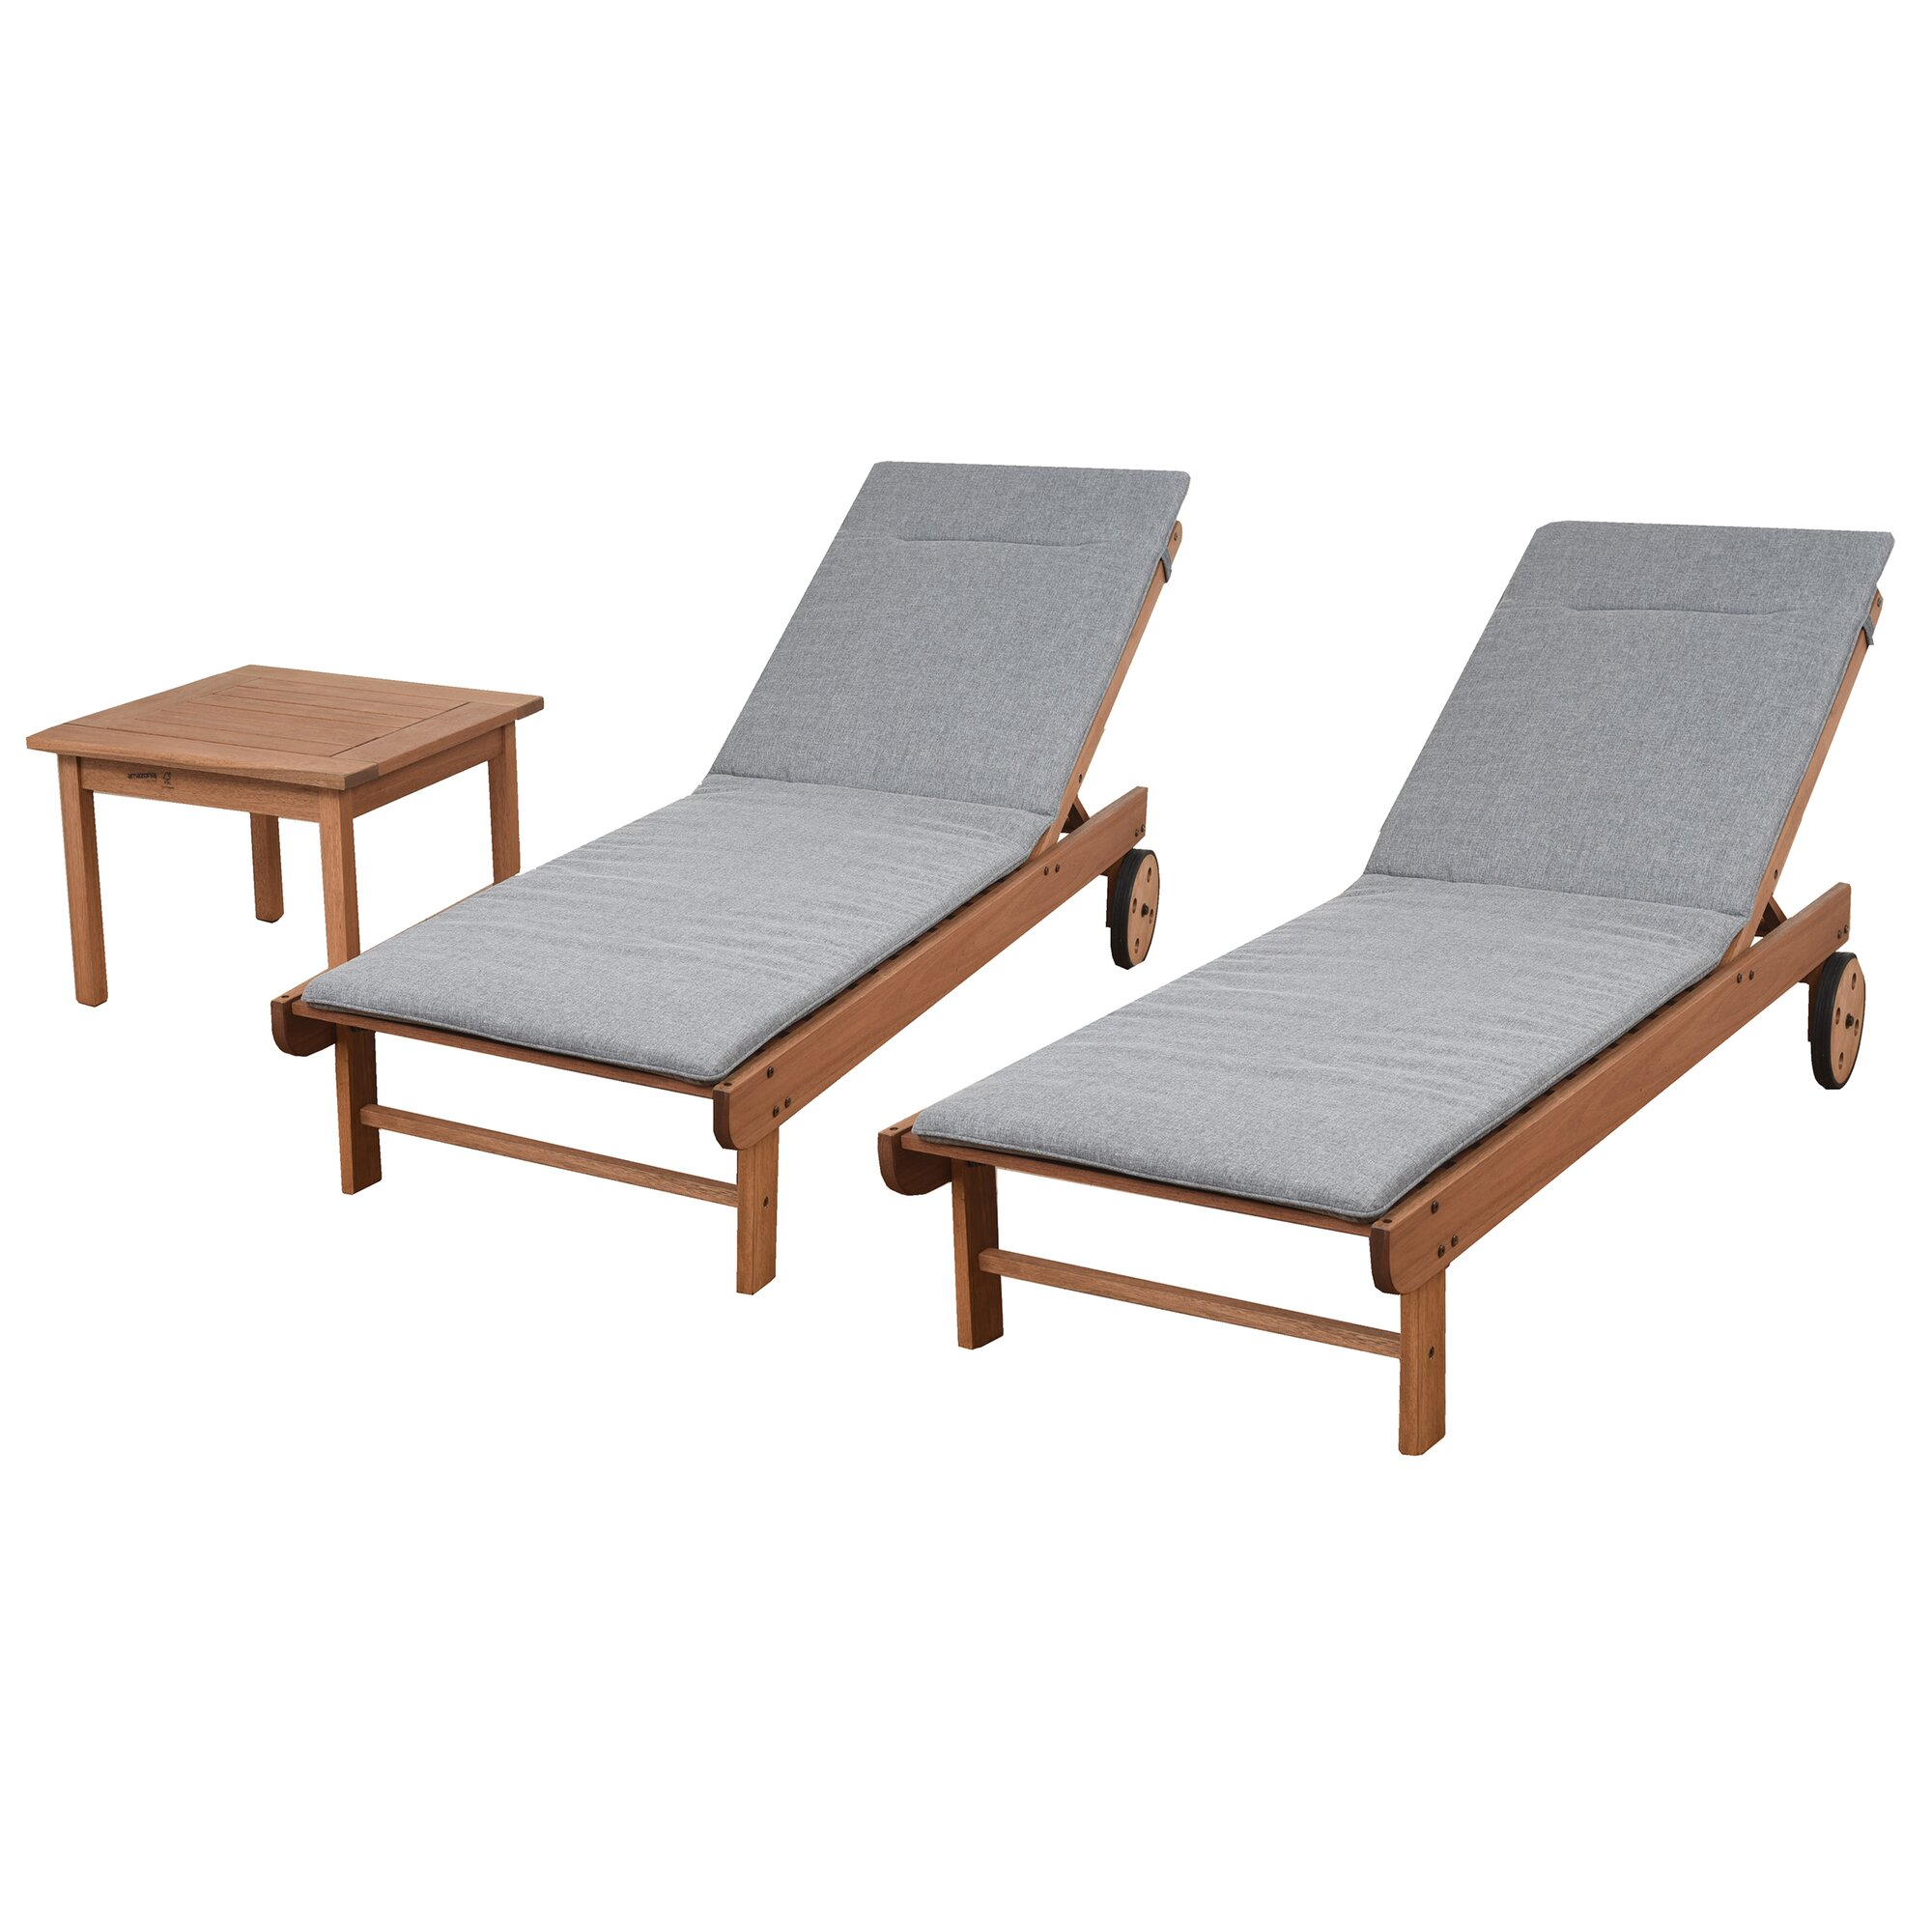 Langley street grey cushion newburypatio 3 piece single for Outdoor furniture langley